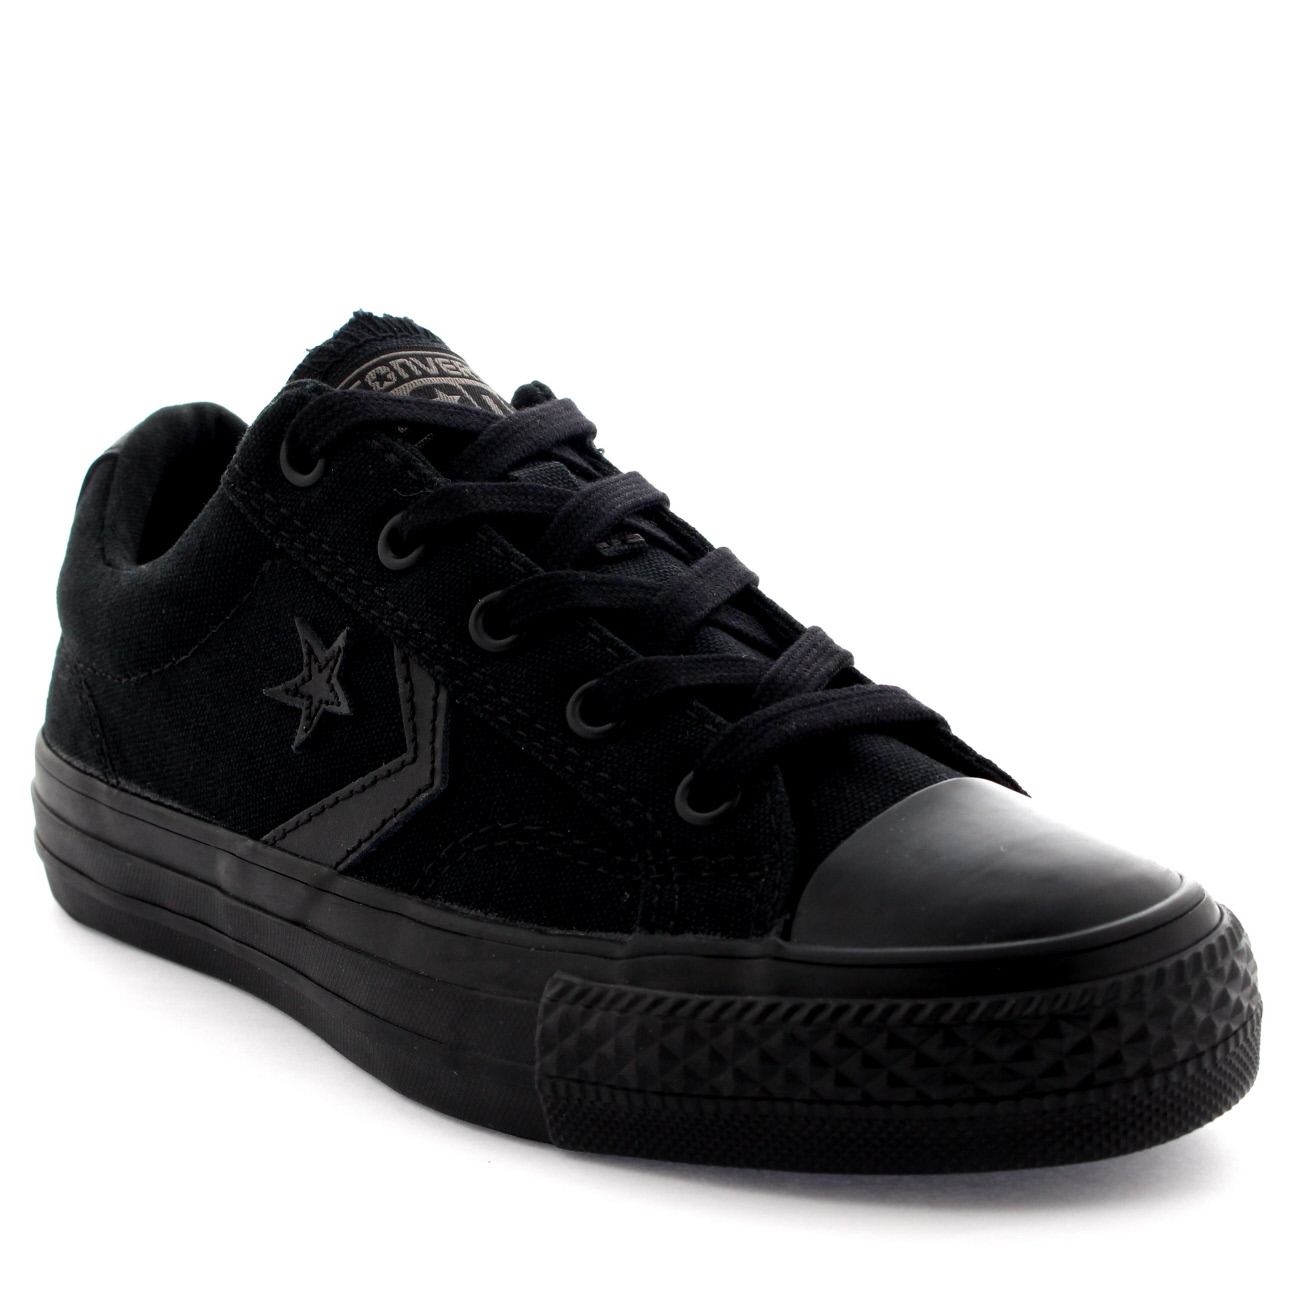 a2f39b15fa Ladies Converse All Star Trainers - Hi Tops   Low Tops - Shubox